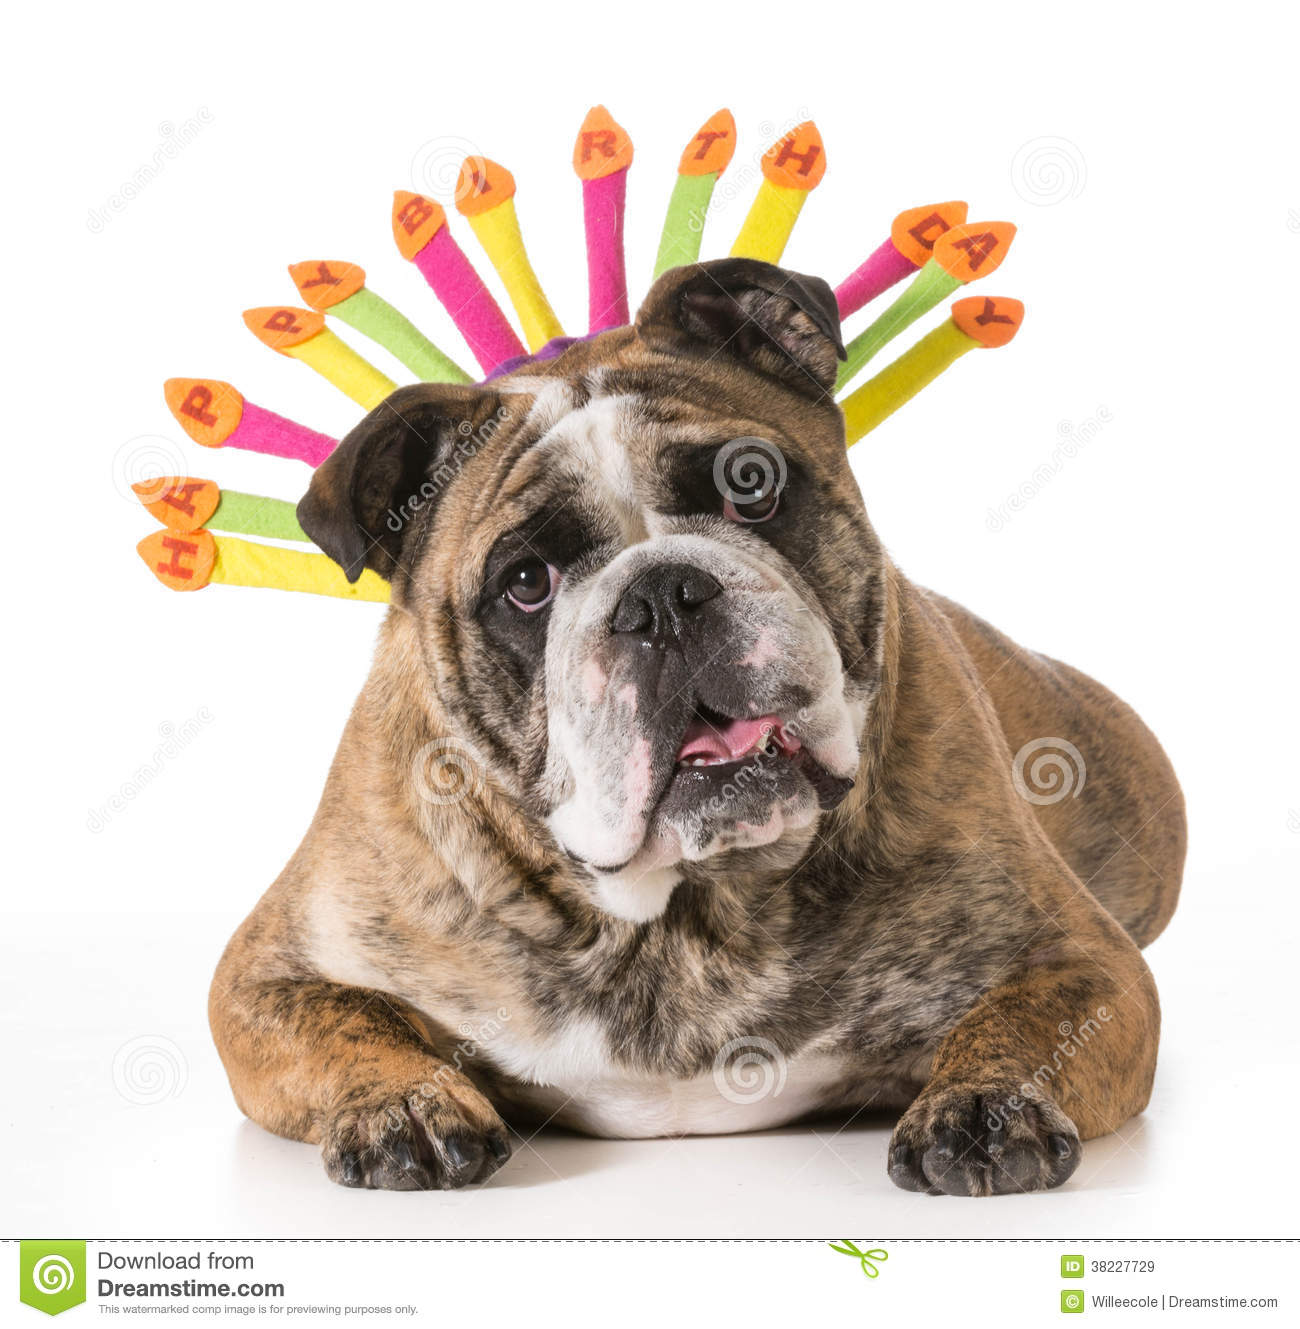 happy birthday dog images free ; birthday-dog-english-bulldog-wearing-happy-hat-year-old-brindle-male-38227729